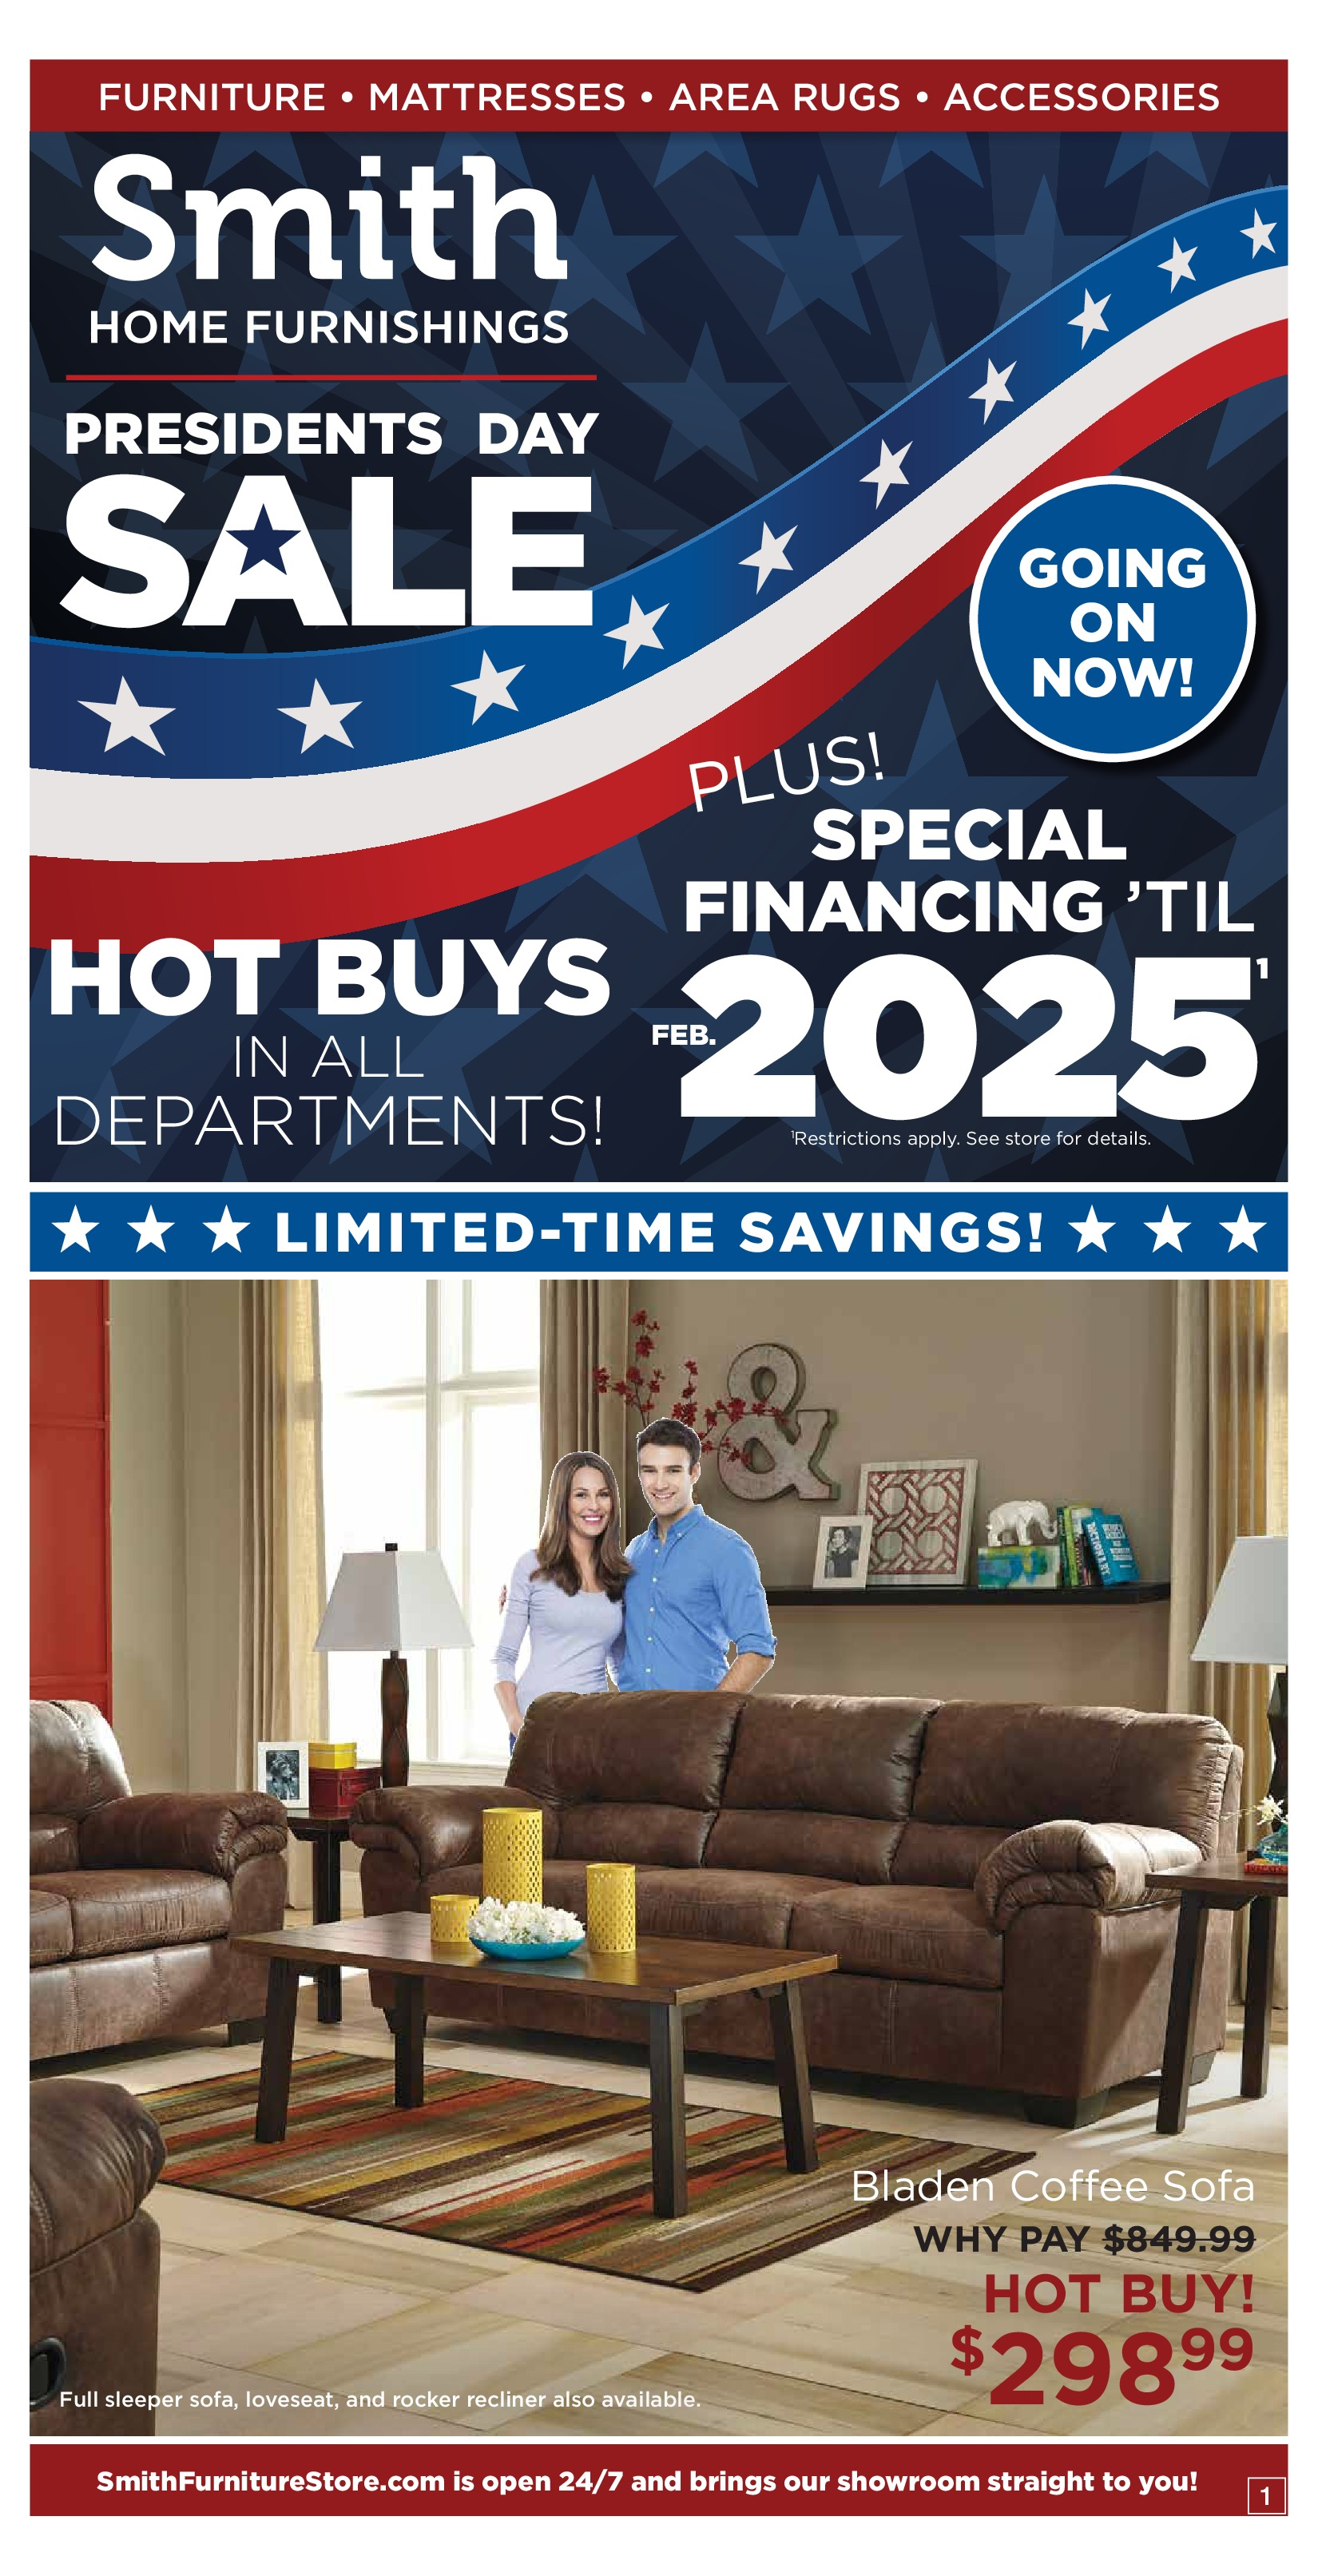 SMHO-9021-2021-PresidentsDay-Specials Page